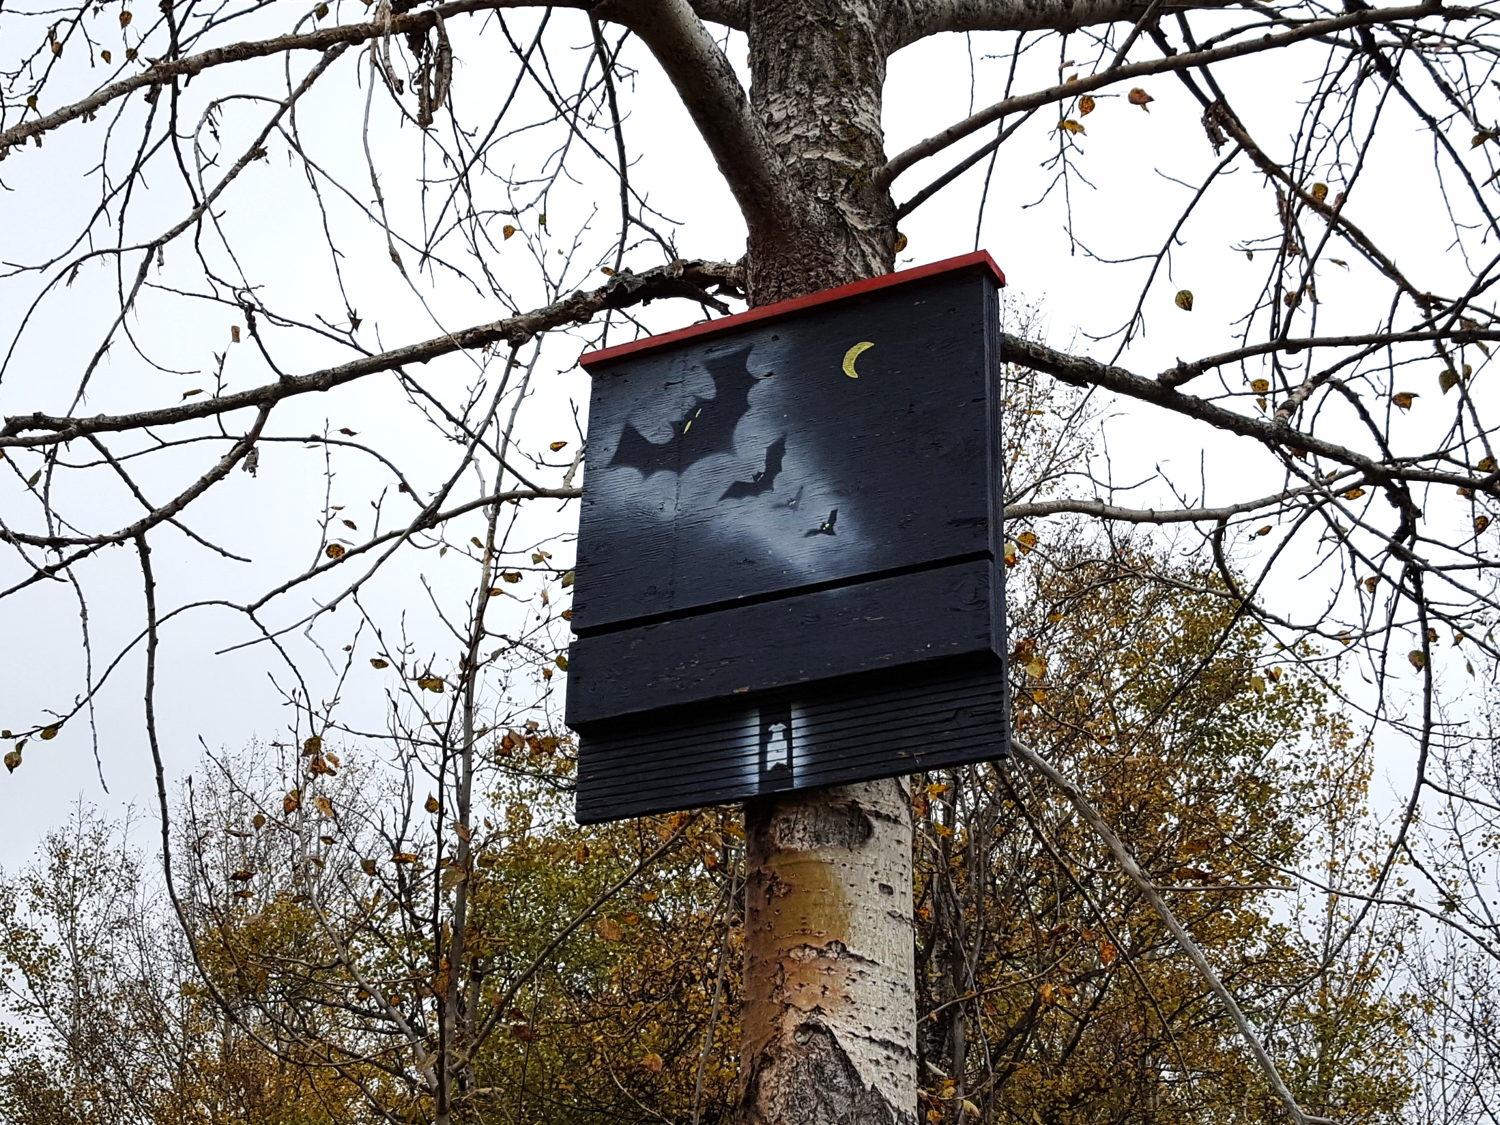 Bat box at Pipestone Creek Conservation Lands built by Susan Kokas.